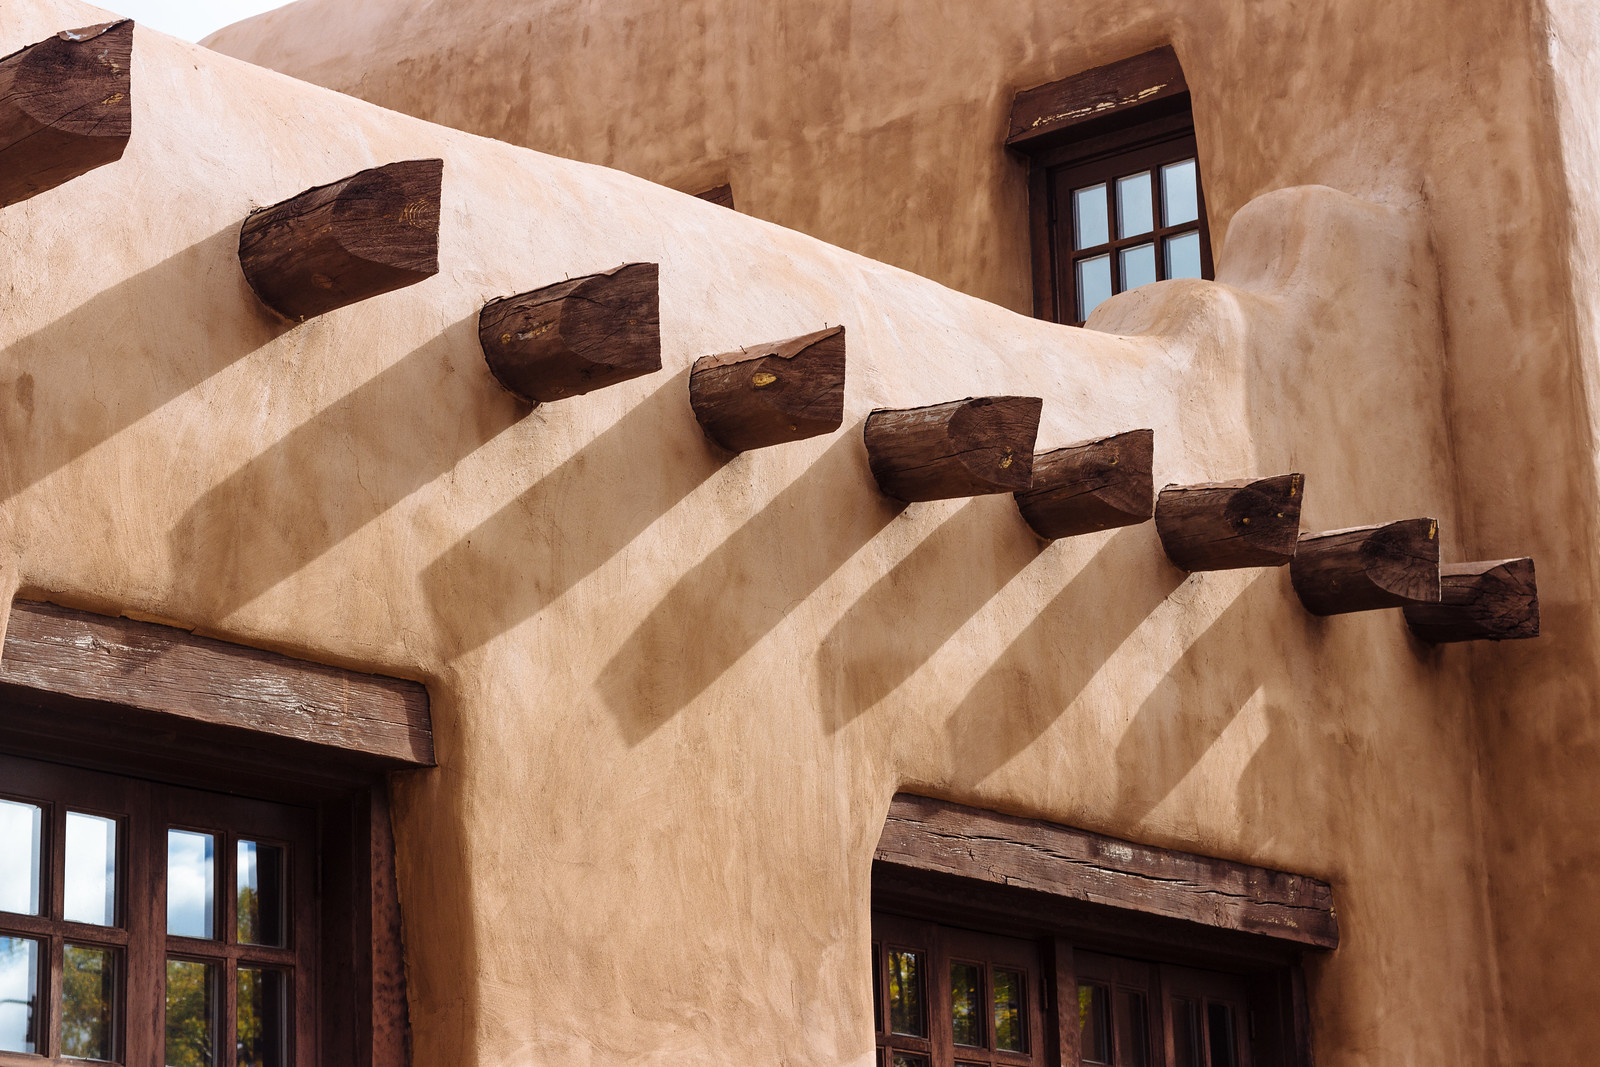 Adobe building with wooden beams in Santa Fe, New Mexico